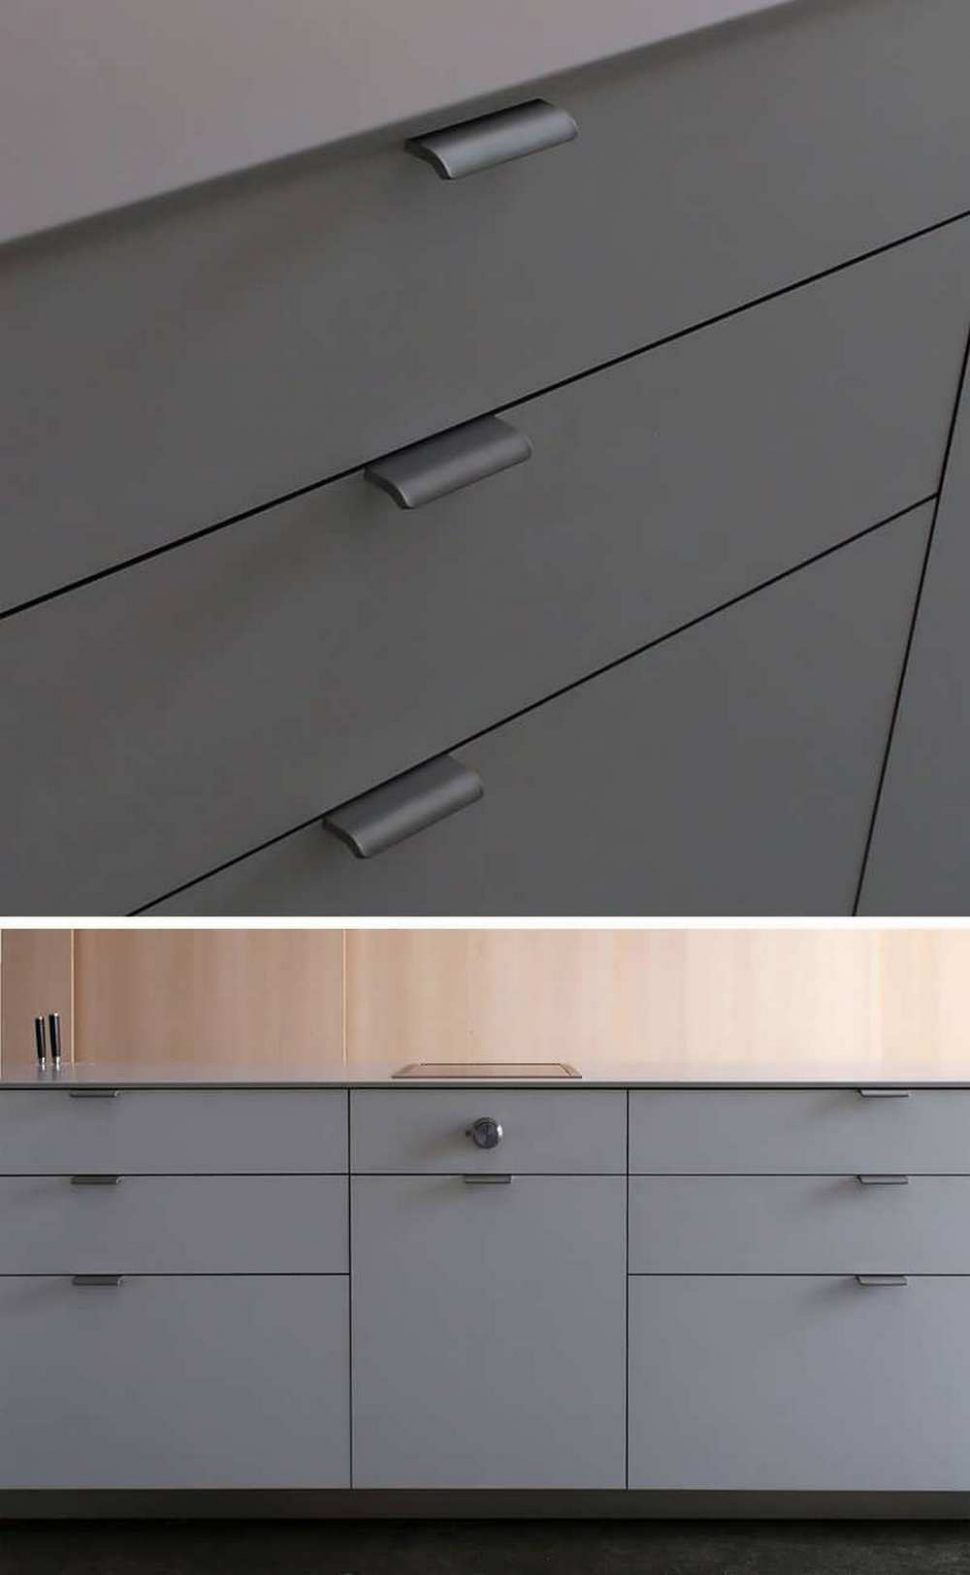 Cabinet Door Pulls Elegant 29 Catchy Kitchen Cabinet Hardware Ideas 2019 A Guide for